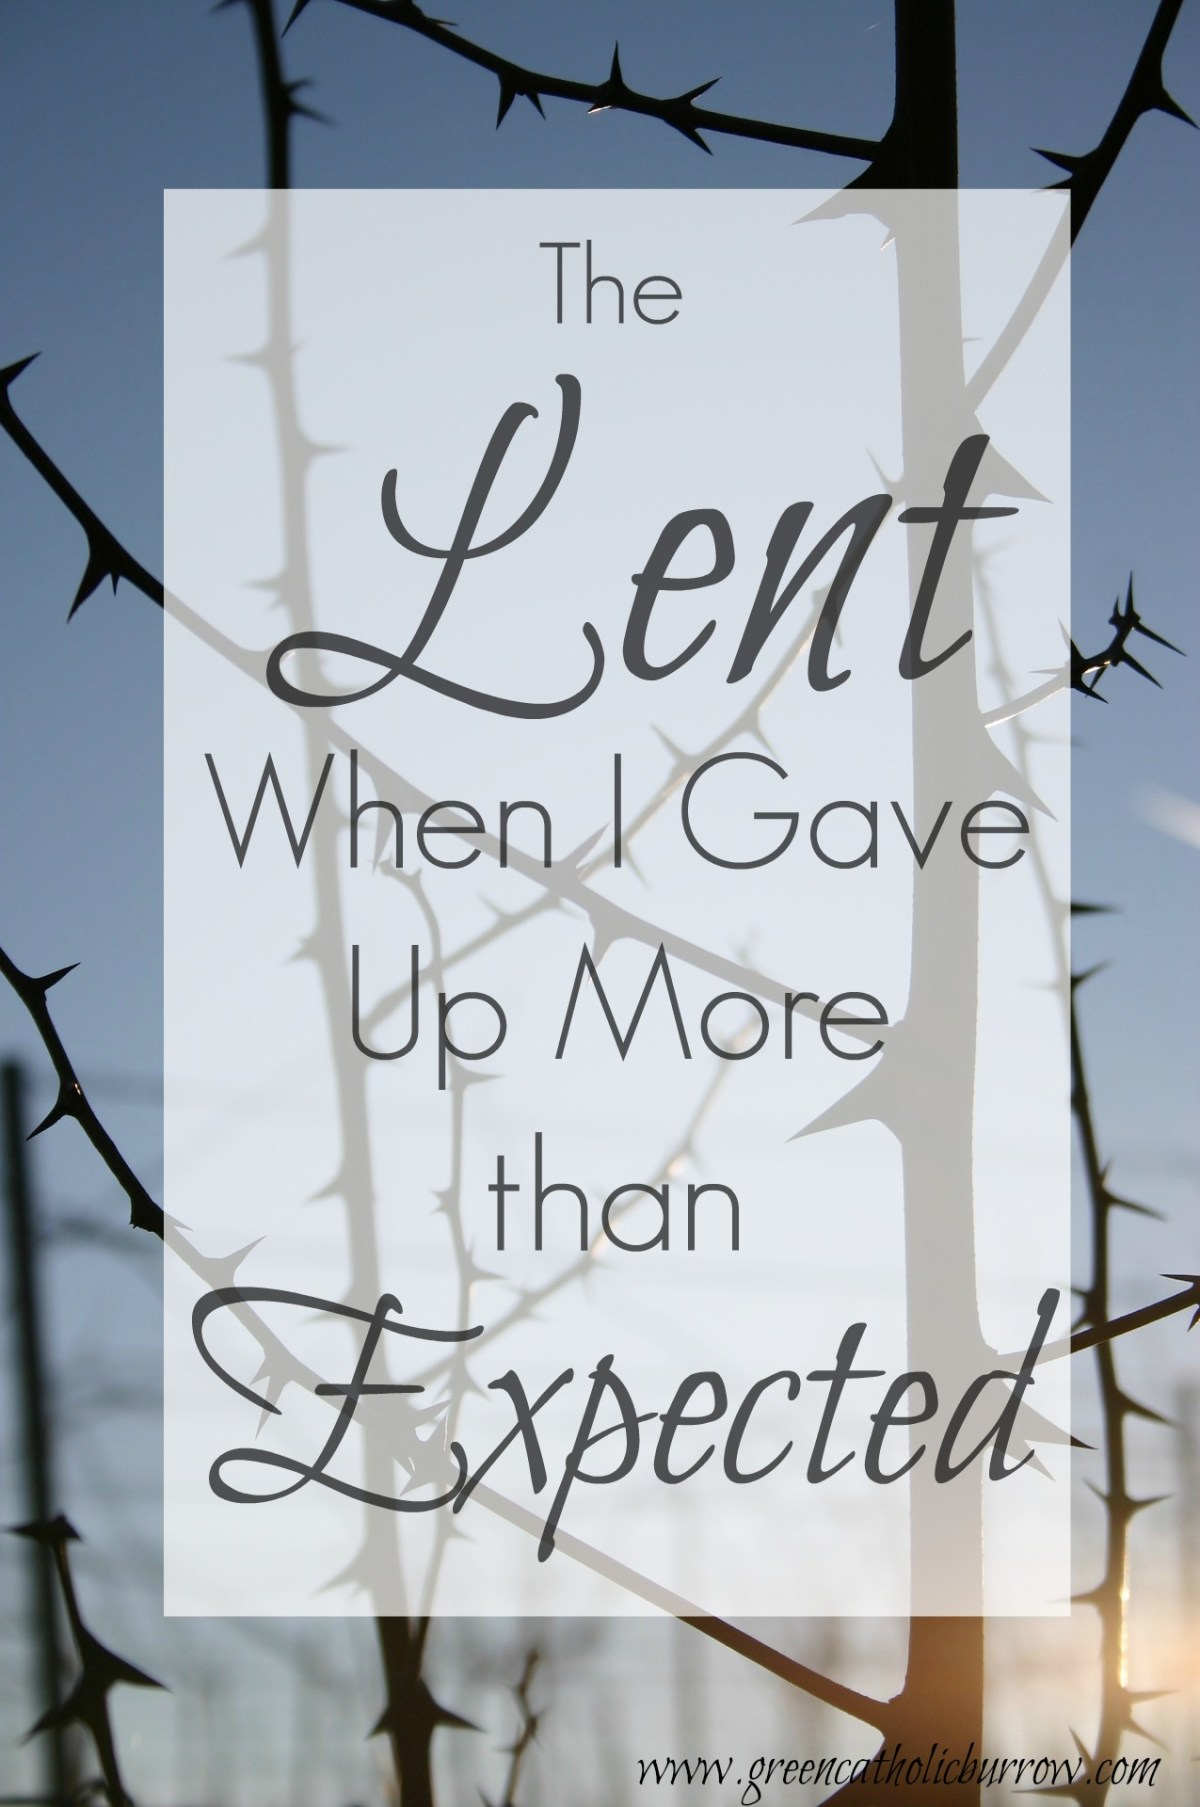 The Lent when I gave up more than expected